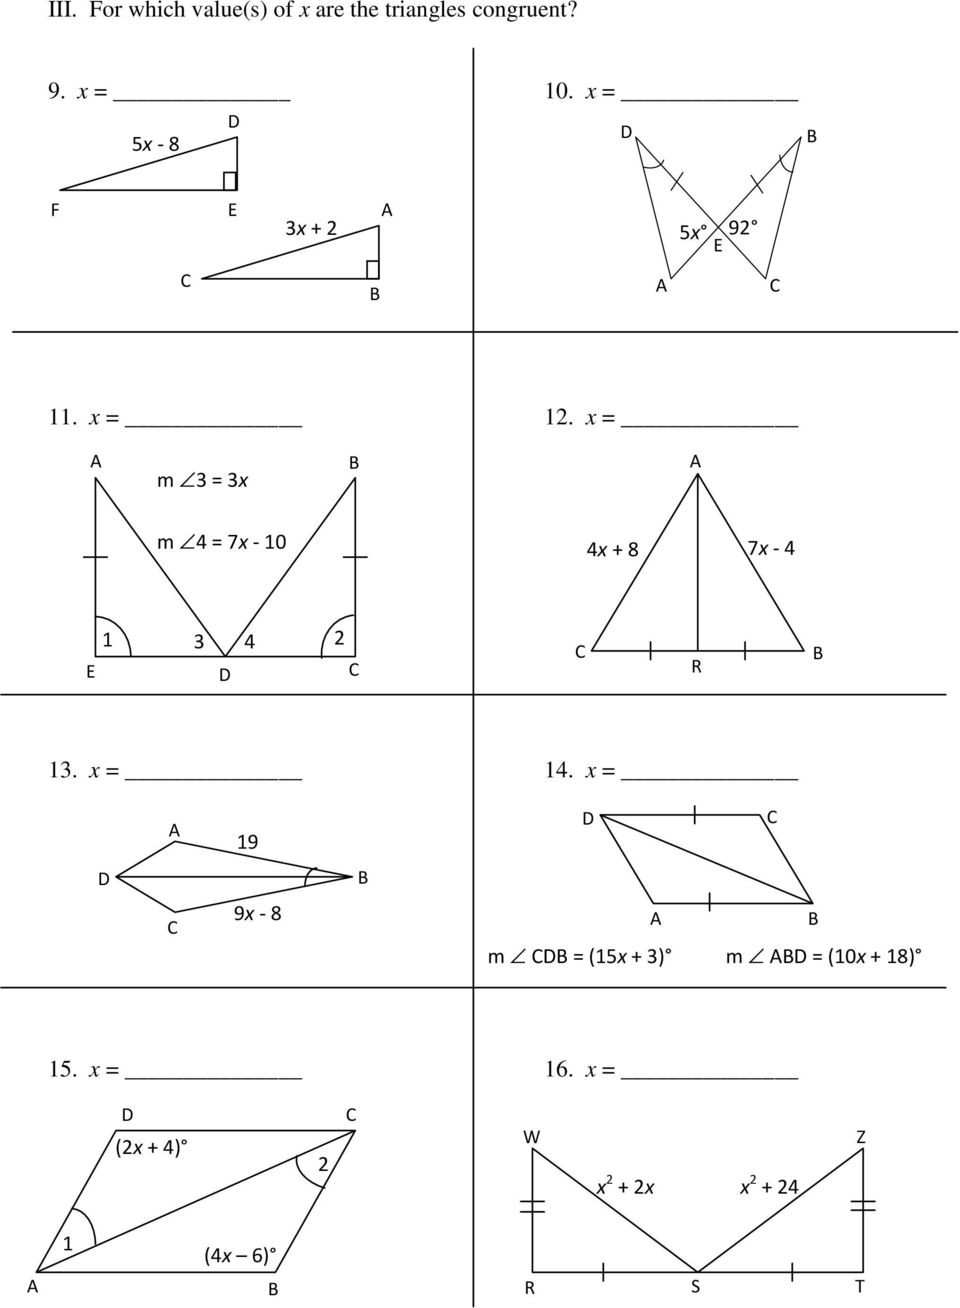 Proving Triangles Congruent Worksheet Name Period 11 2 11 13 Pdf Free Download